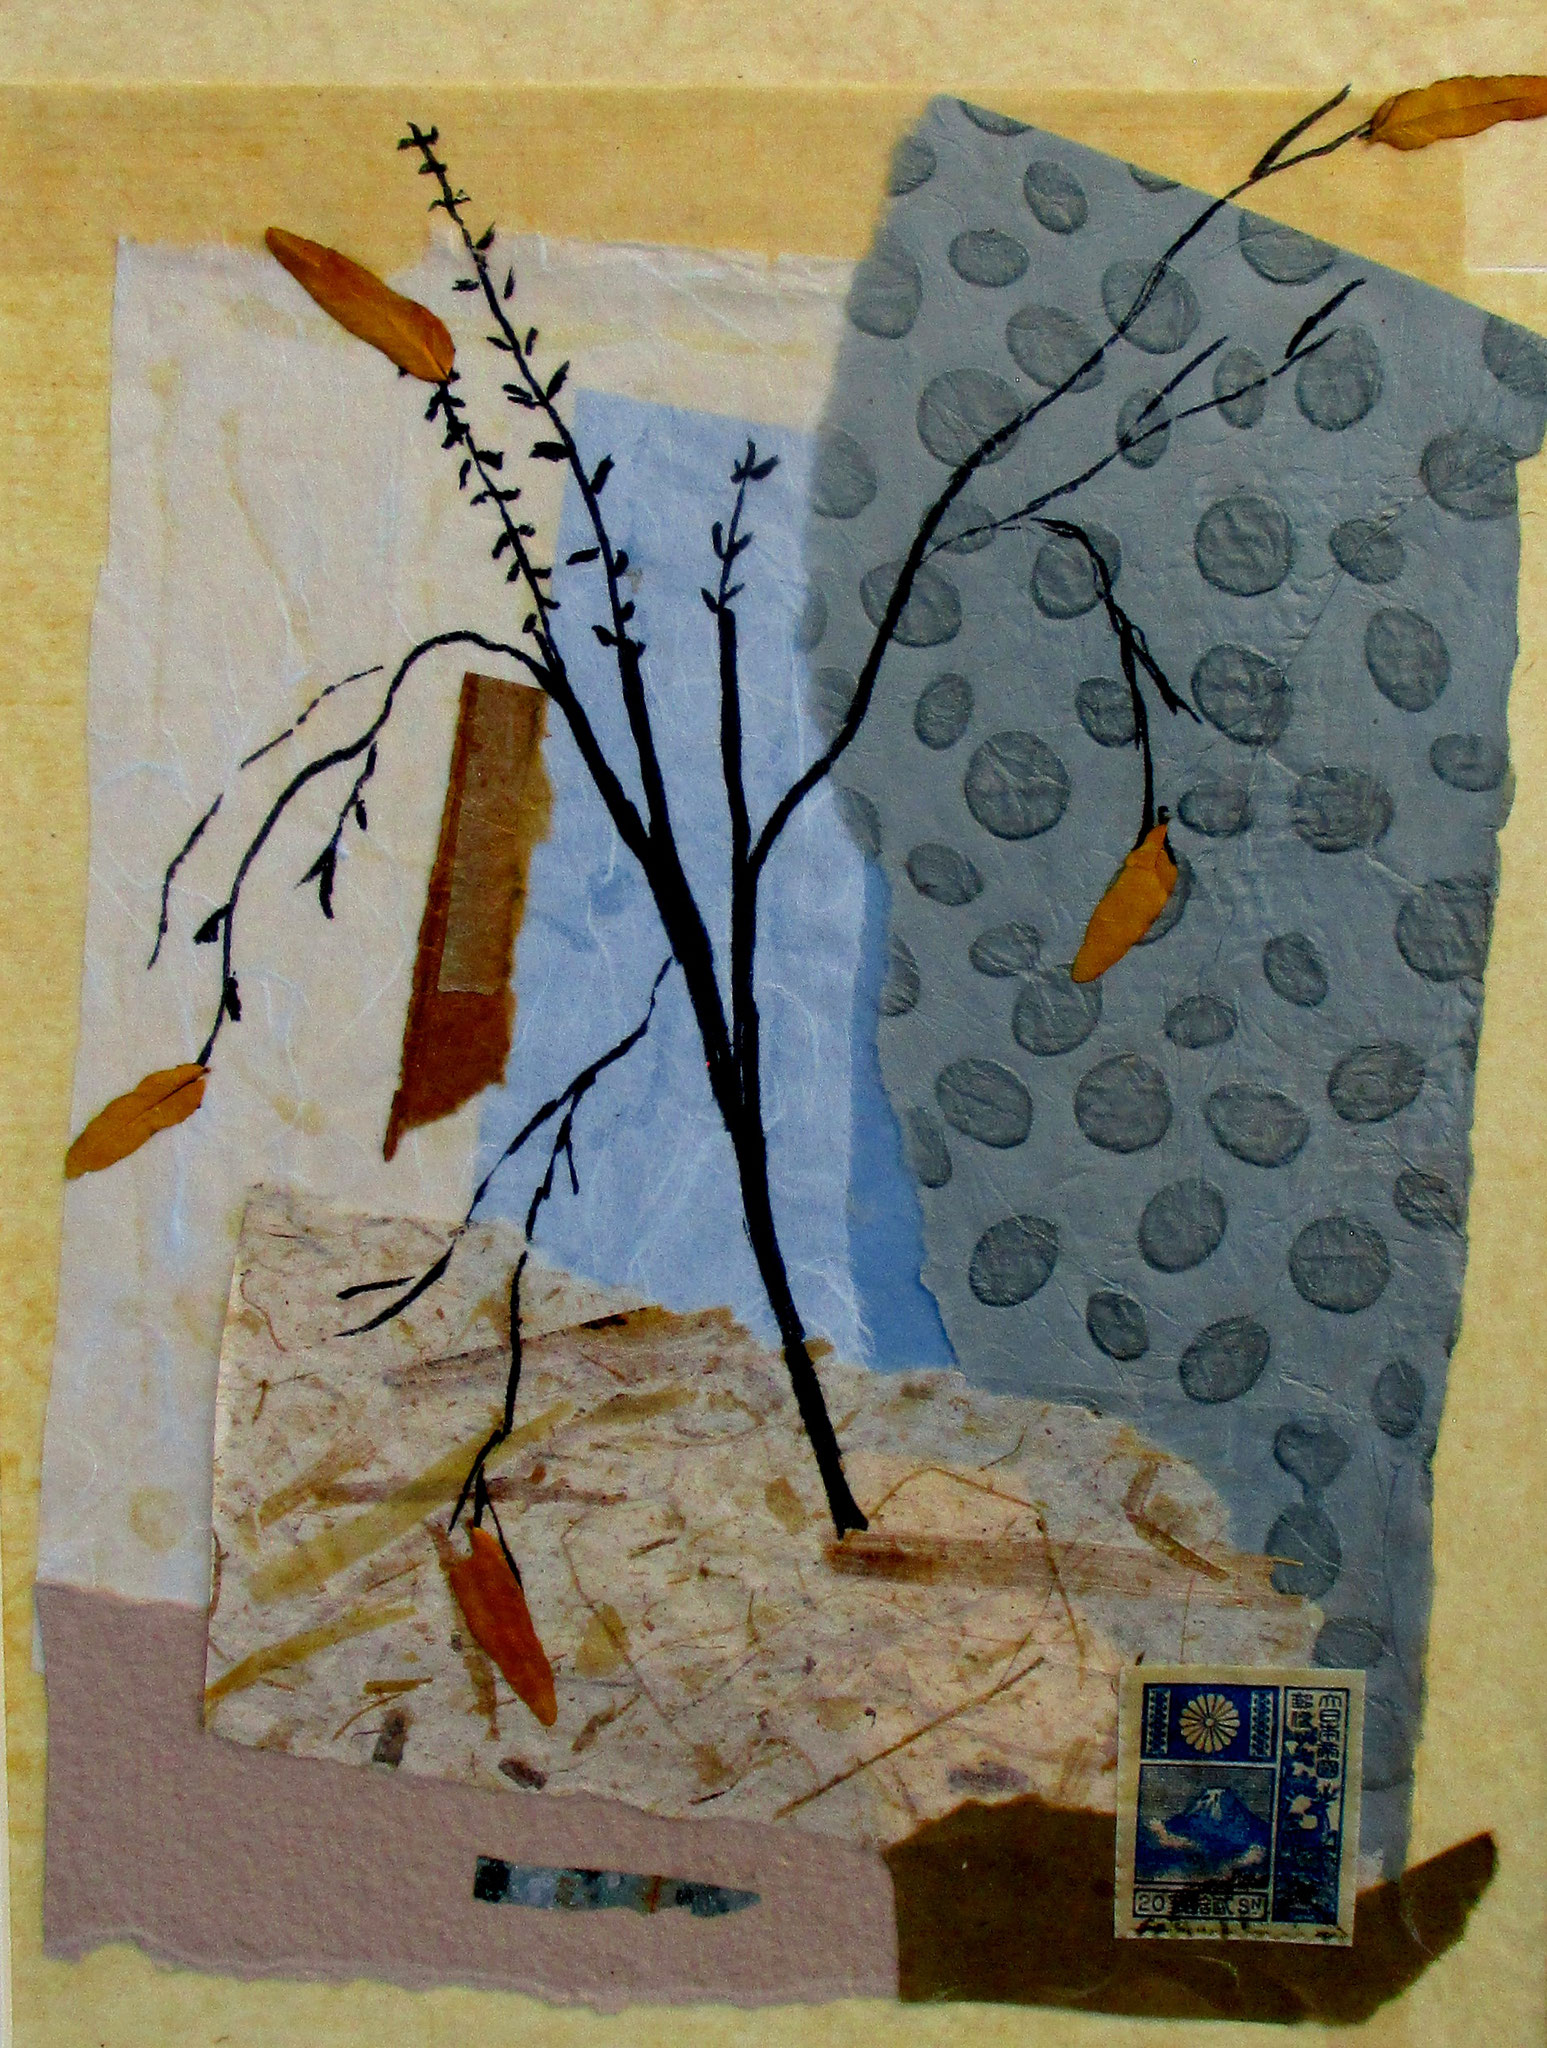 Summer Leaves 夏の葉, collage, 12 x 16 matted